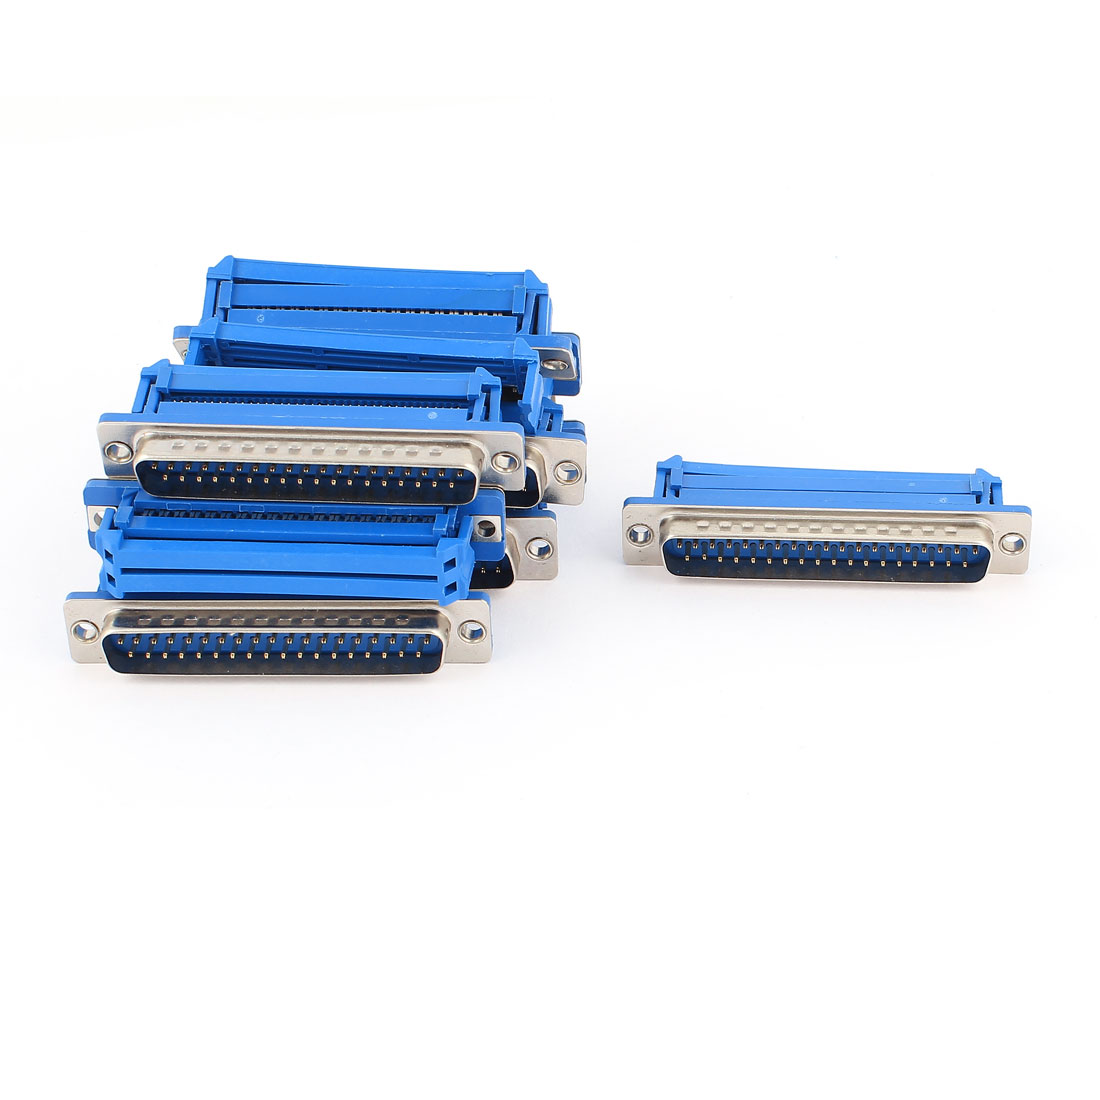 10Pcs D-SUB DB37 Male IDC Connector Blue for Flat Ribbon Cable